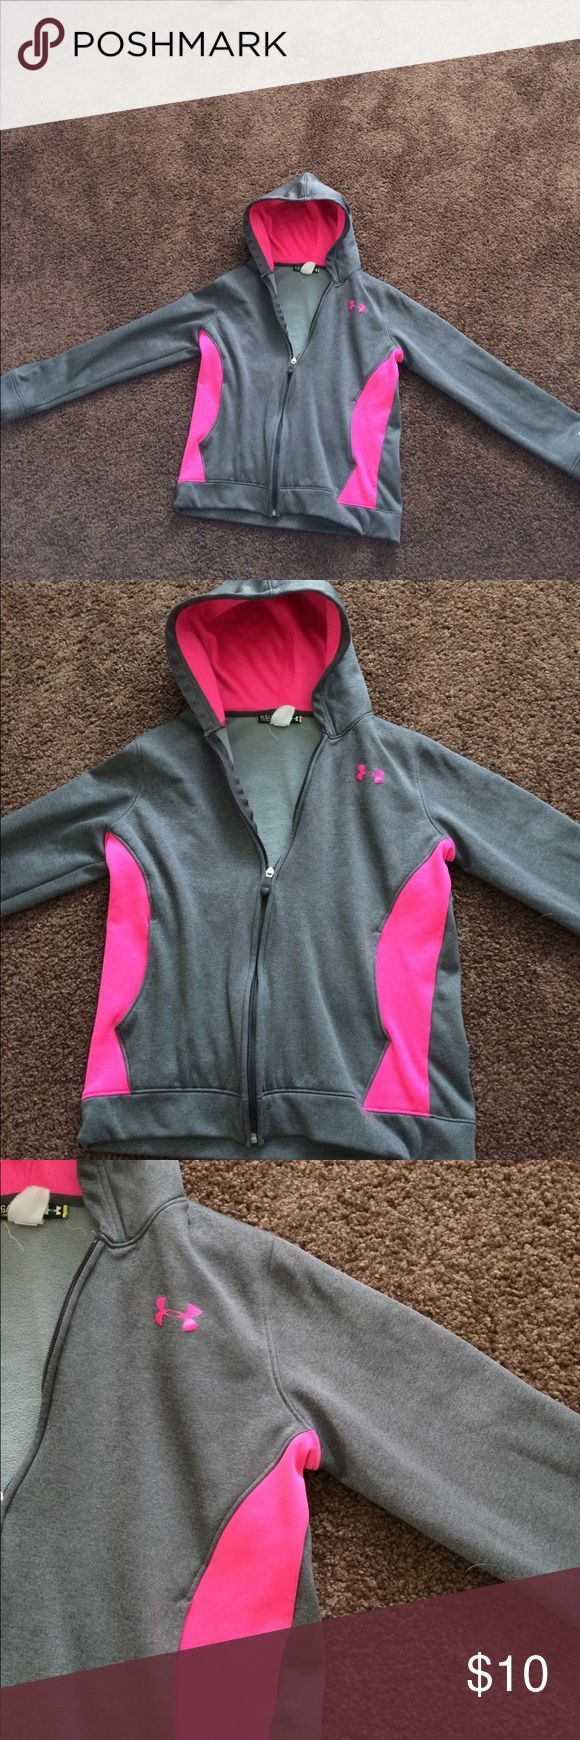 Under Armor Pink & Grey Size Youth Large Jacket Under Armor Pink & Grey Size Youth Large Athletic Jacket. I wear a Medium, so a Large is very comfortable! Great condition! Under Armour Jackets & Coats